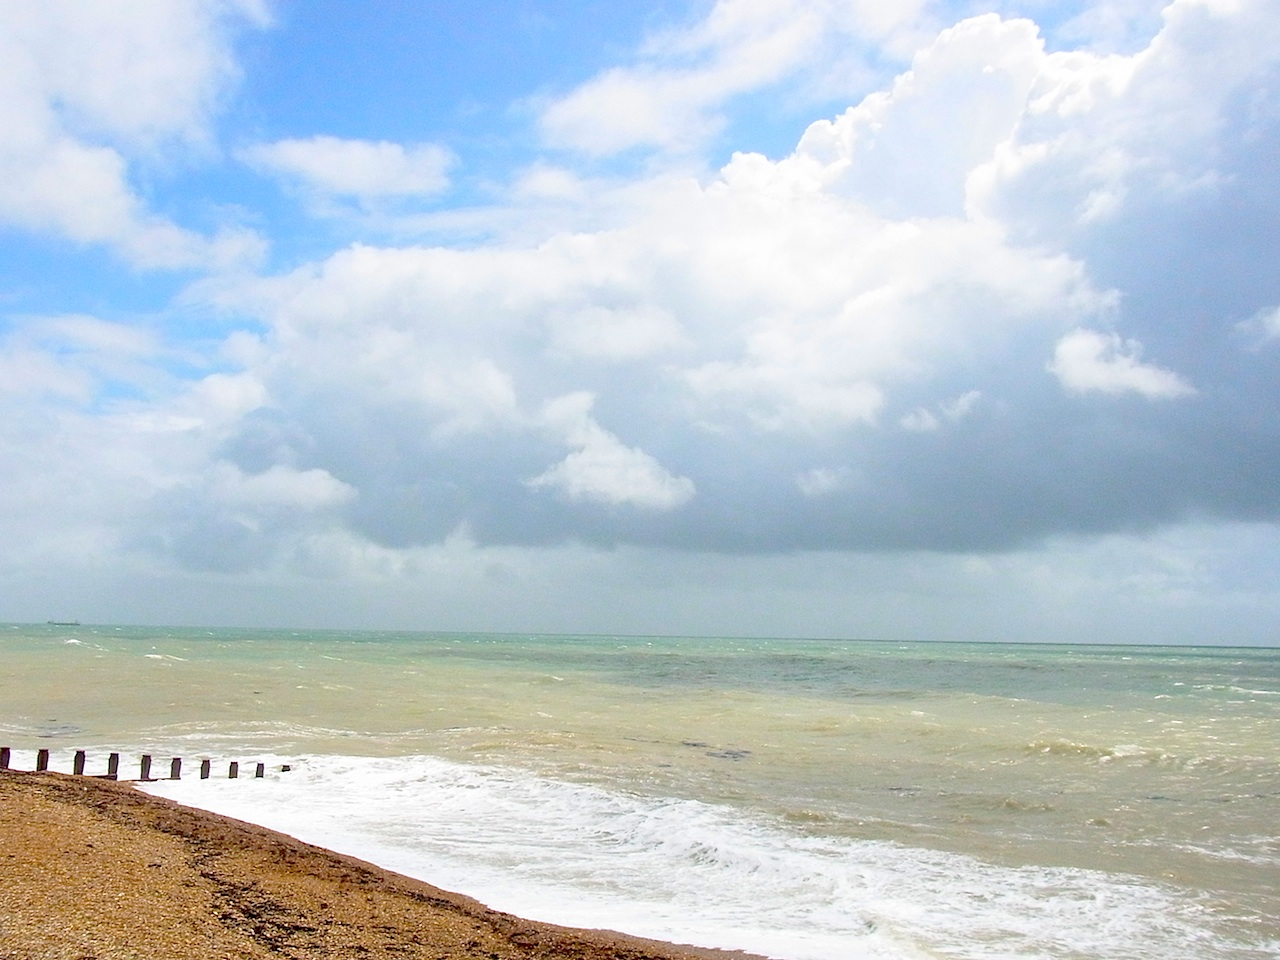 eastbournesea3.jpg